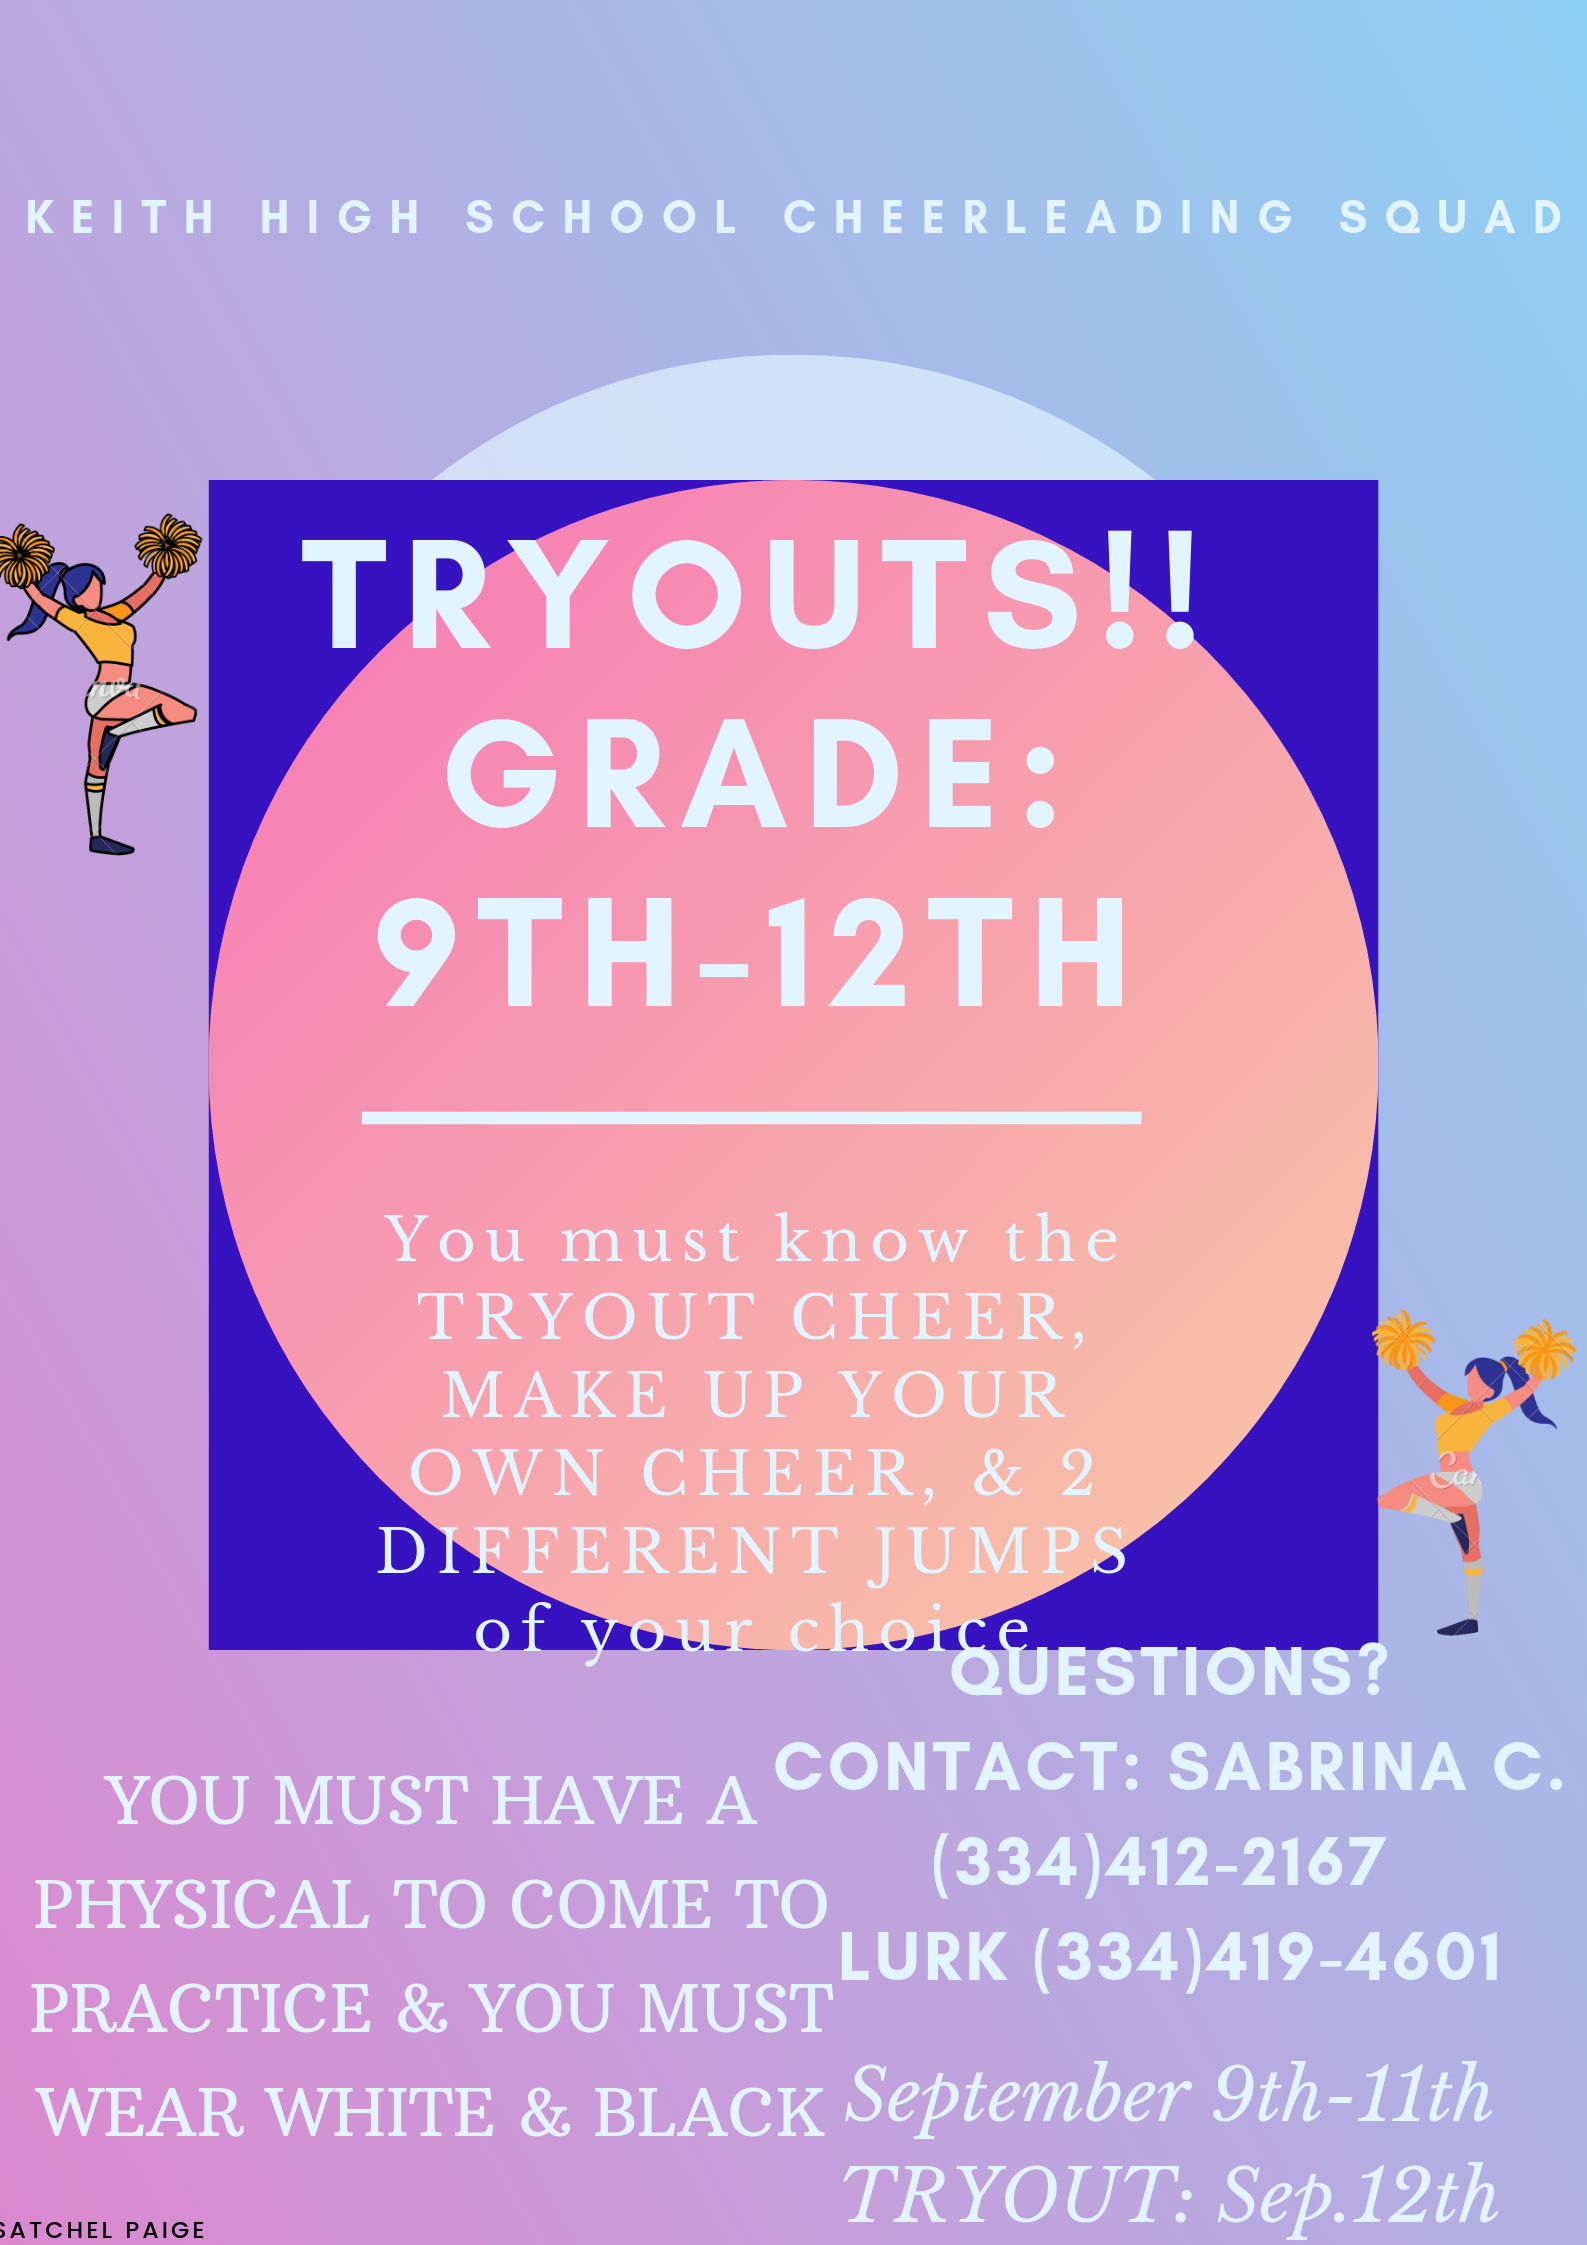 Keith High Cheerleader Squad Tryouts Grades 9-12